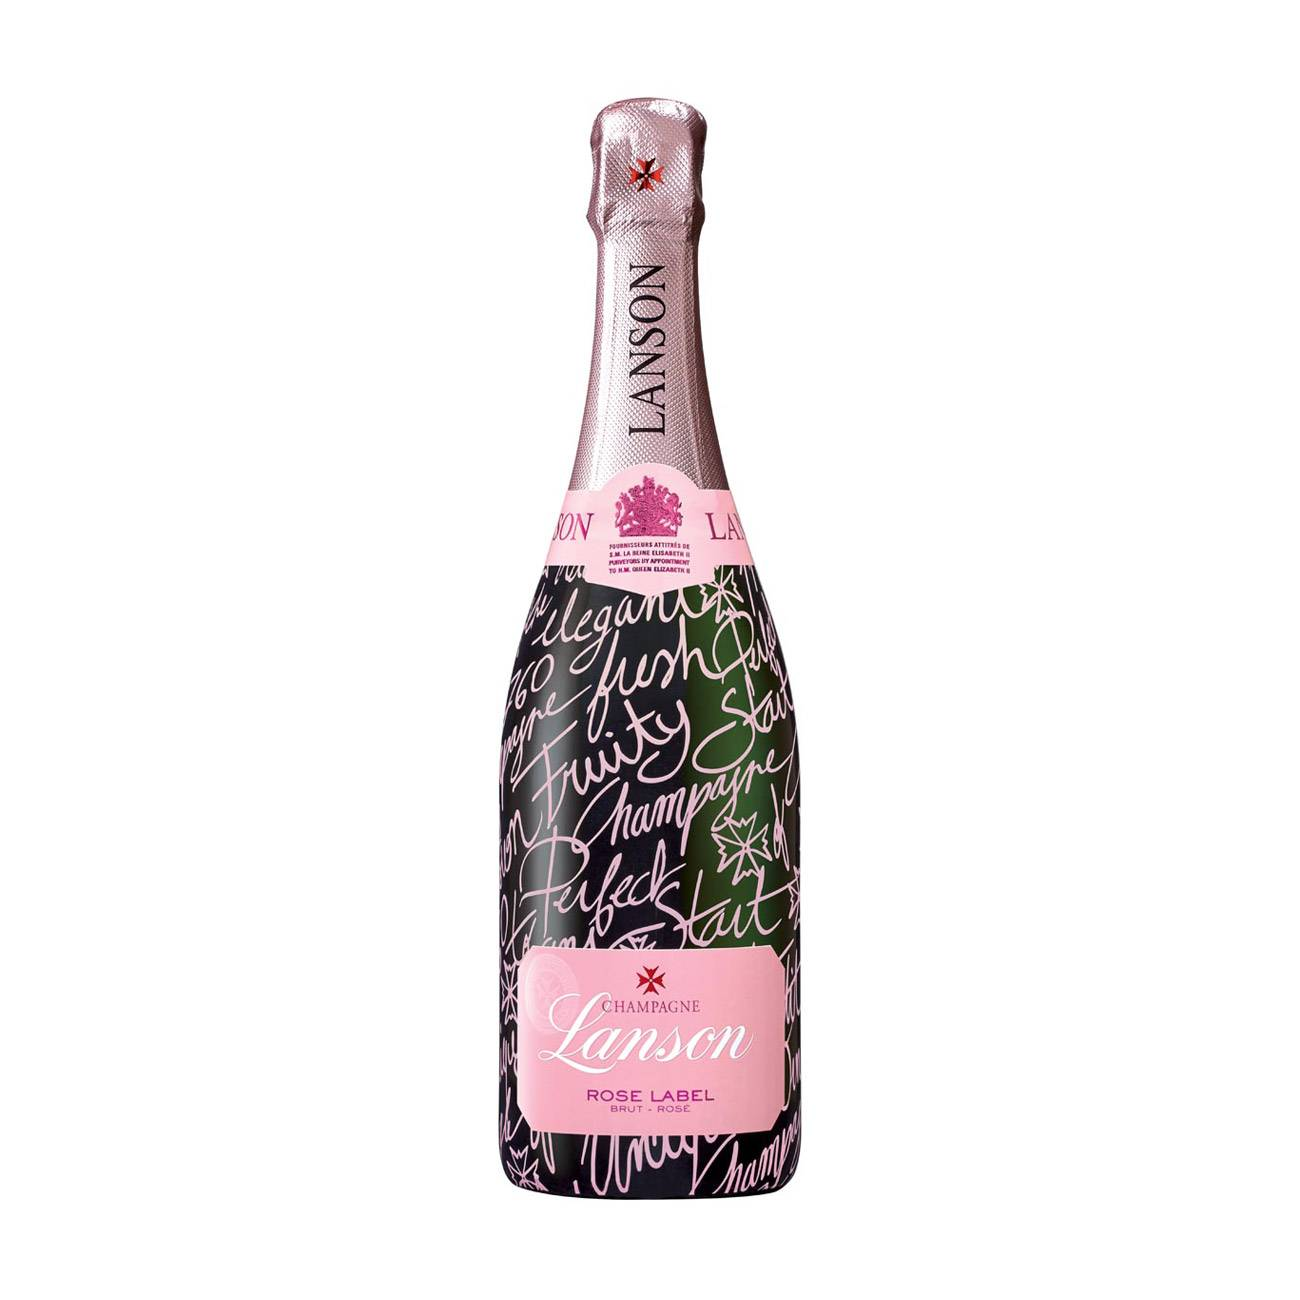 Sampanie, ROSE BRUT MESSAGE IN BOTTLE 750ml, Lanson